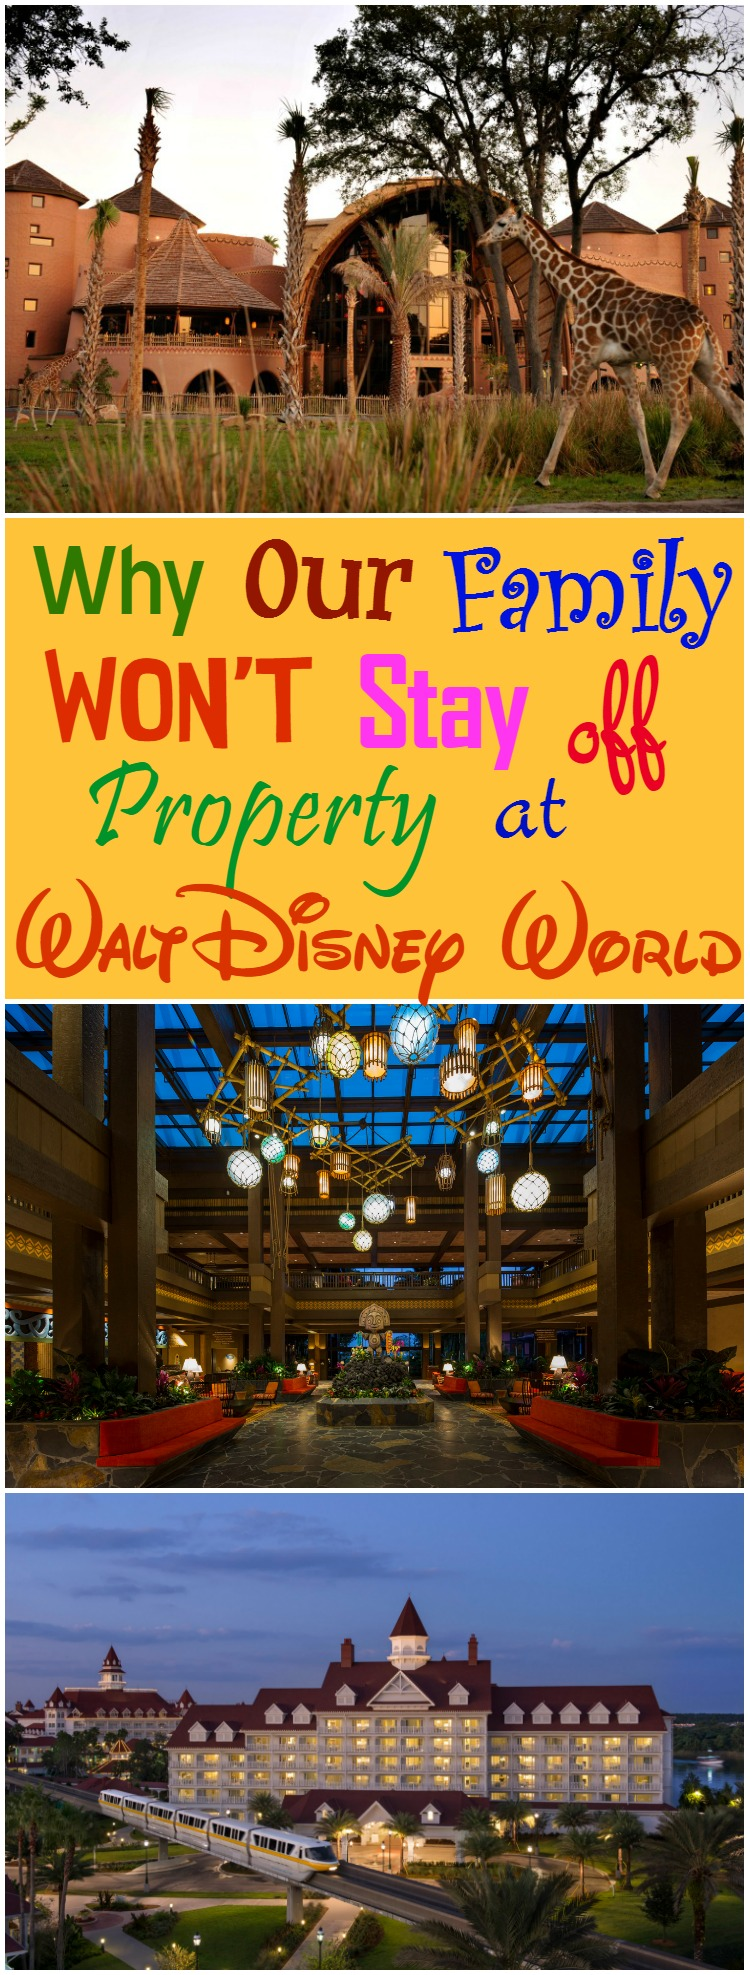 Why our family wont stay off property at Walt Disney World